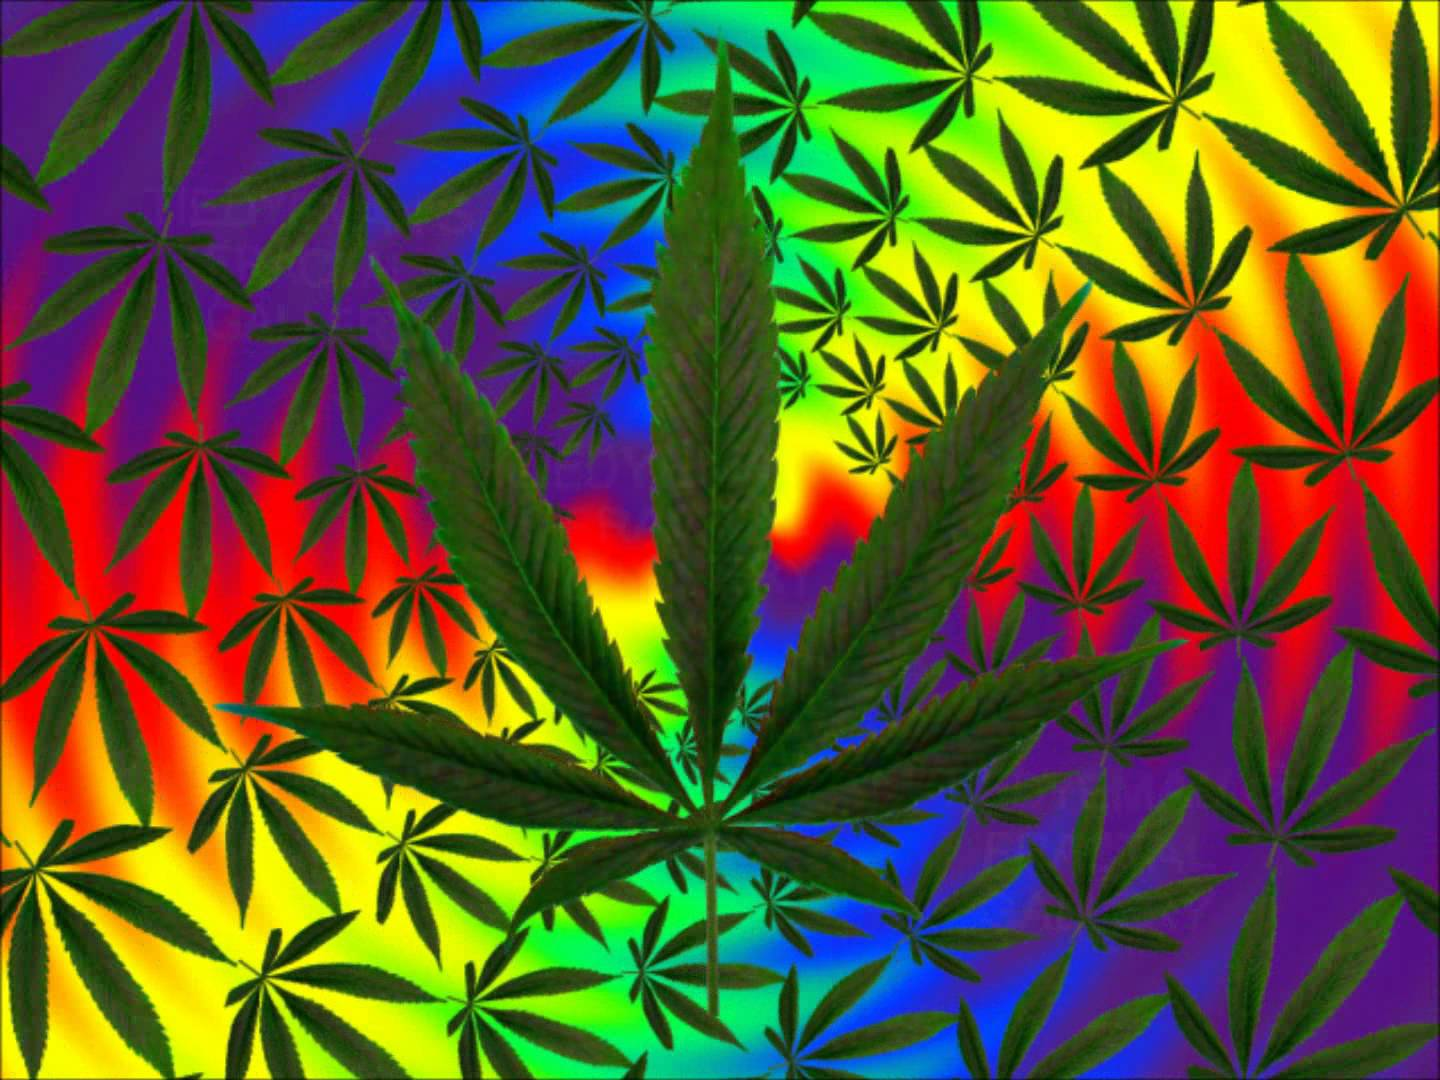 Trippy Weed Wallpapers For Iphone – Epic Wallpaperz